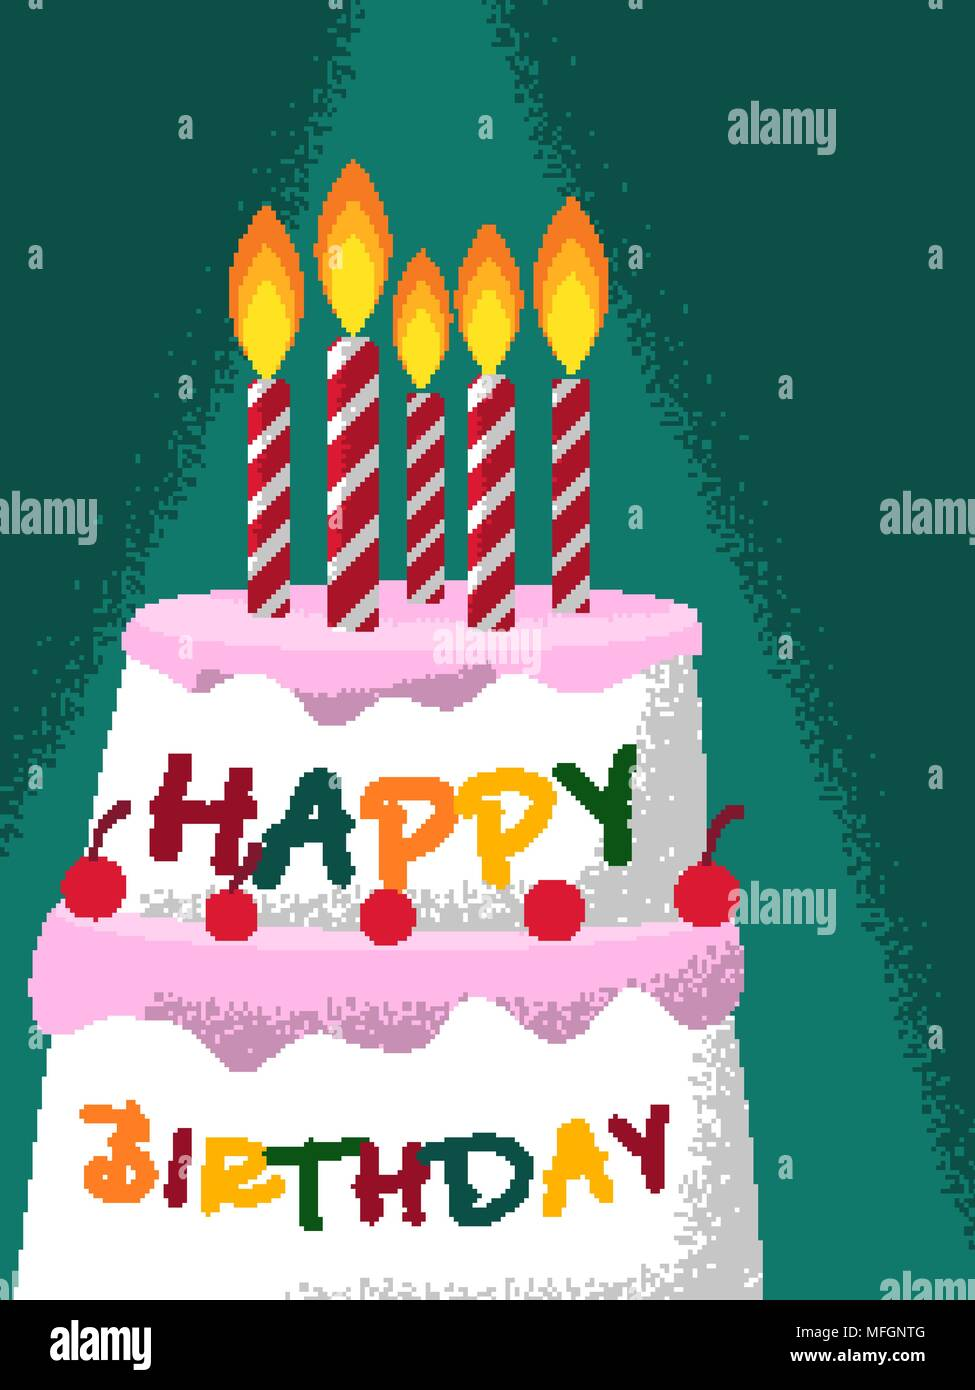 Tremendous A Cake With Candles For A Birthday For Your Design Vector Personalised Birthday Cards Veneteletsinfo